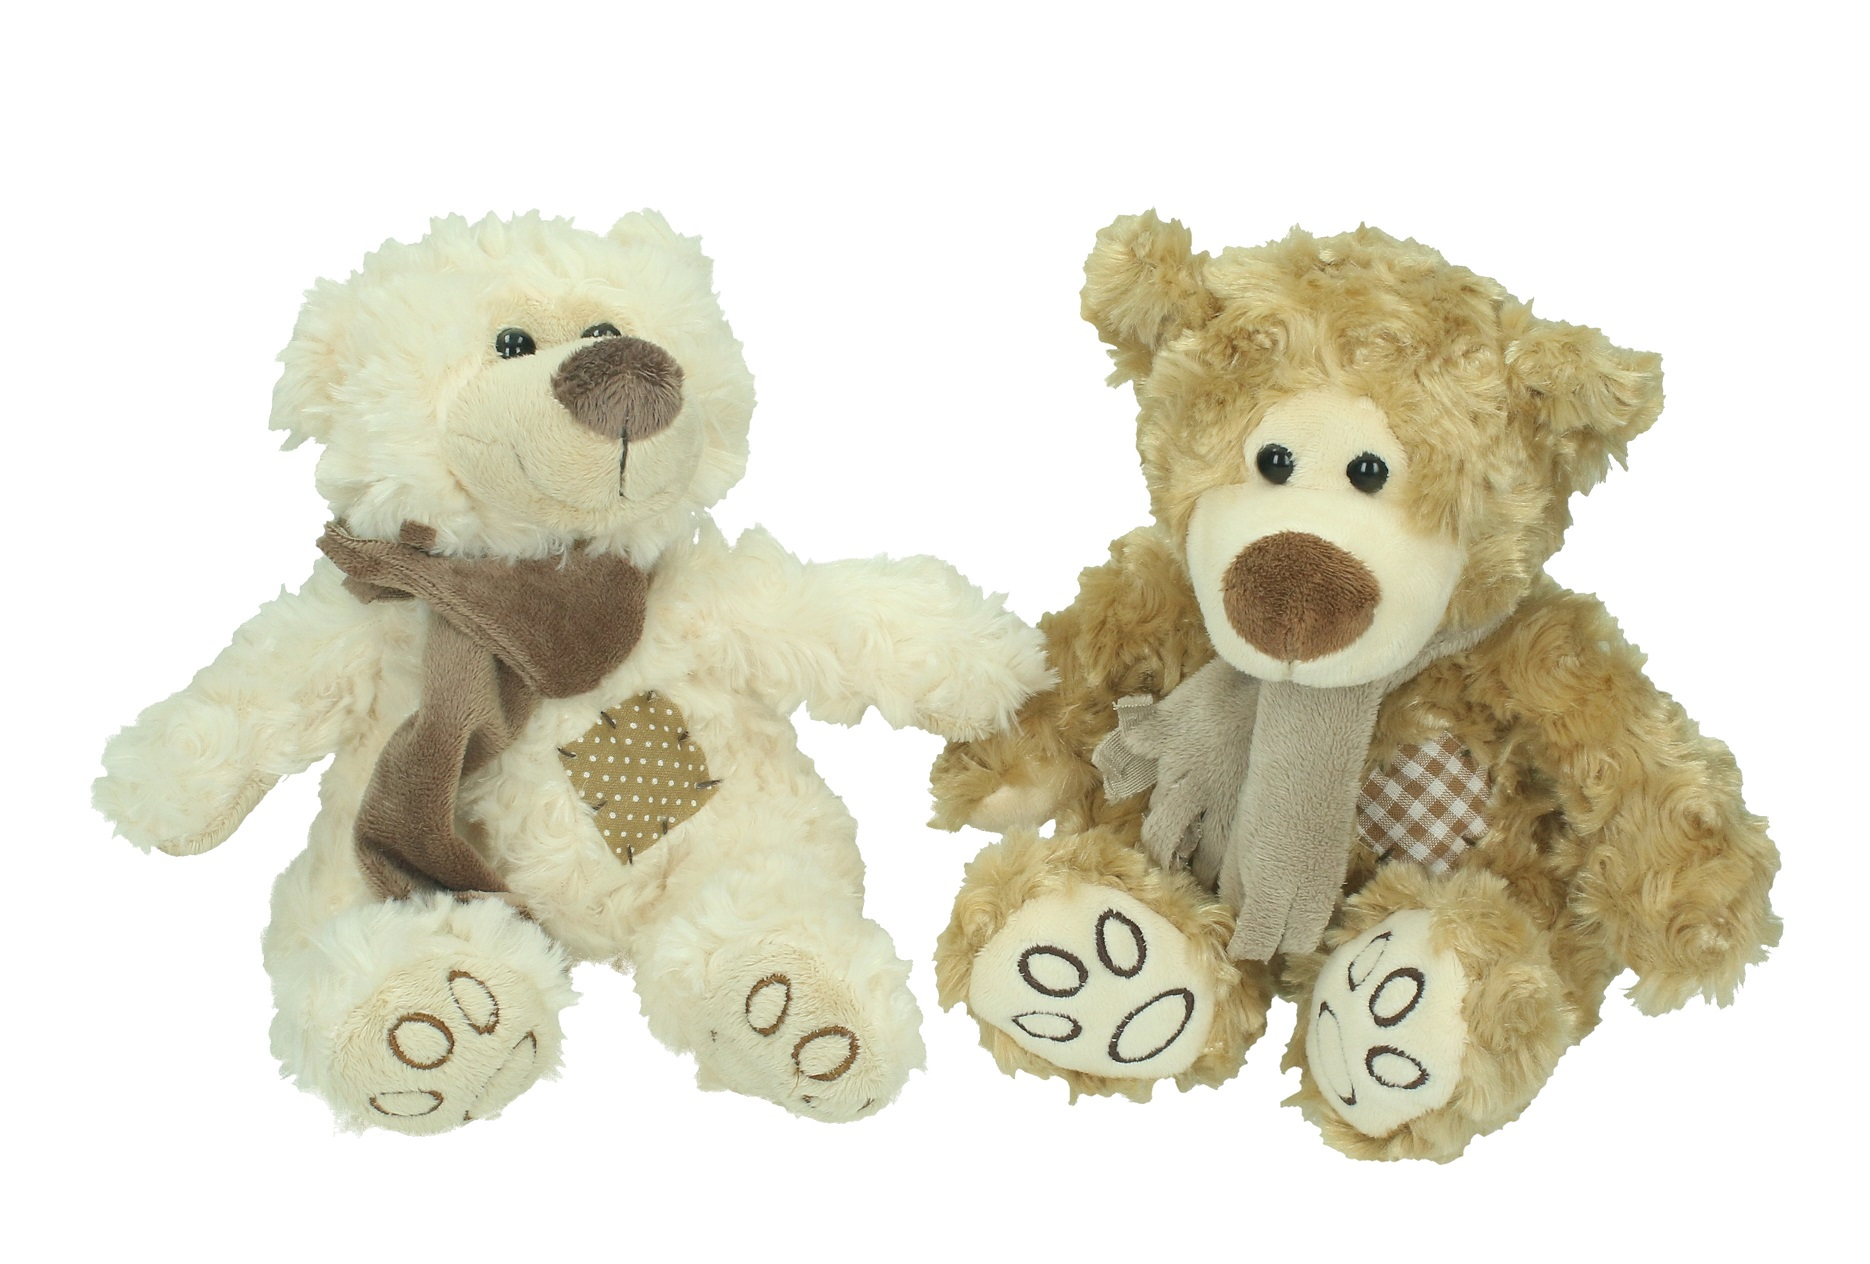 Betz animal teddy 2 pcs stuffed toys bears in brown and beige